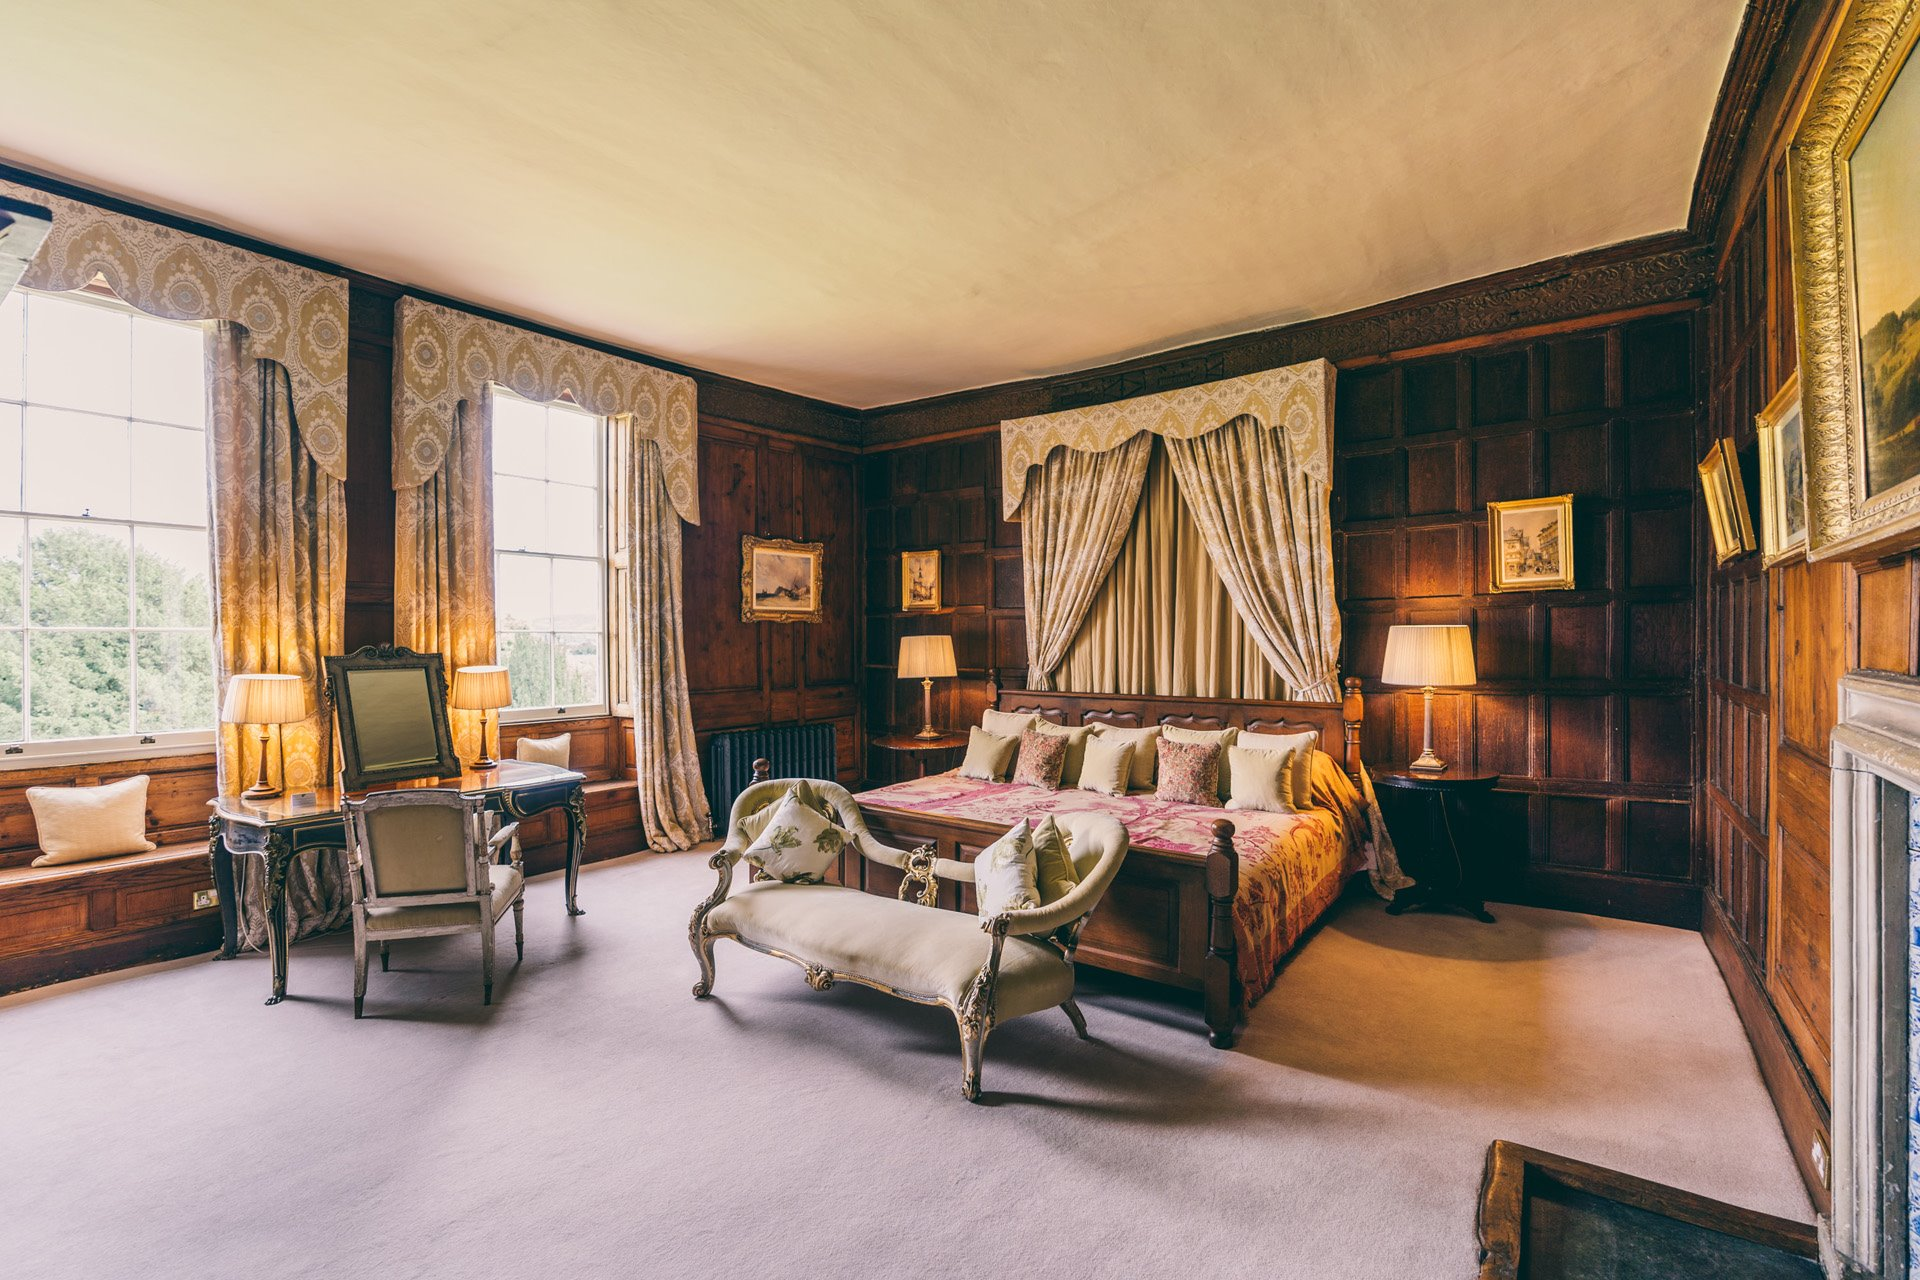 Bridal suite or guest accommodation the master suite at Elmore Court is a beautiful wood panelled room with giant caesar bed and adjoining dressing room